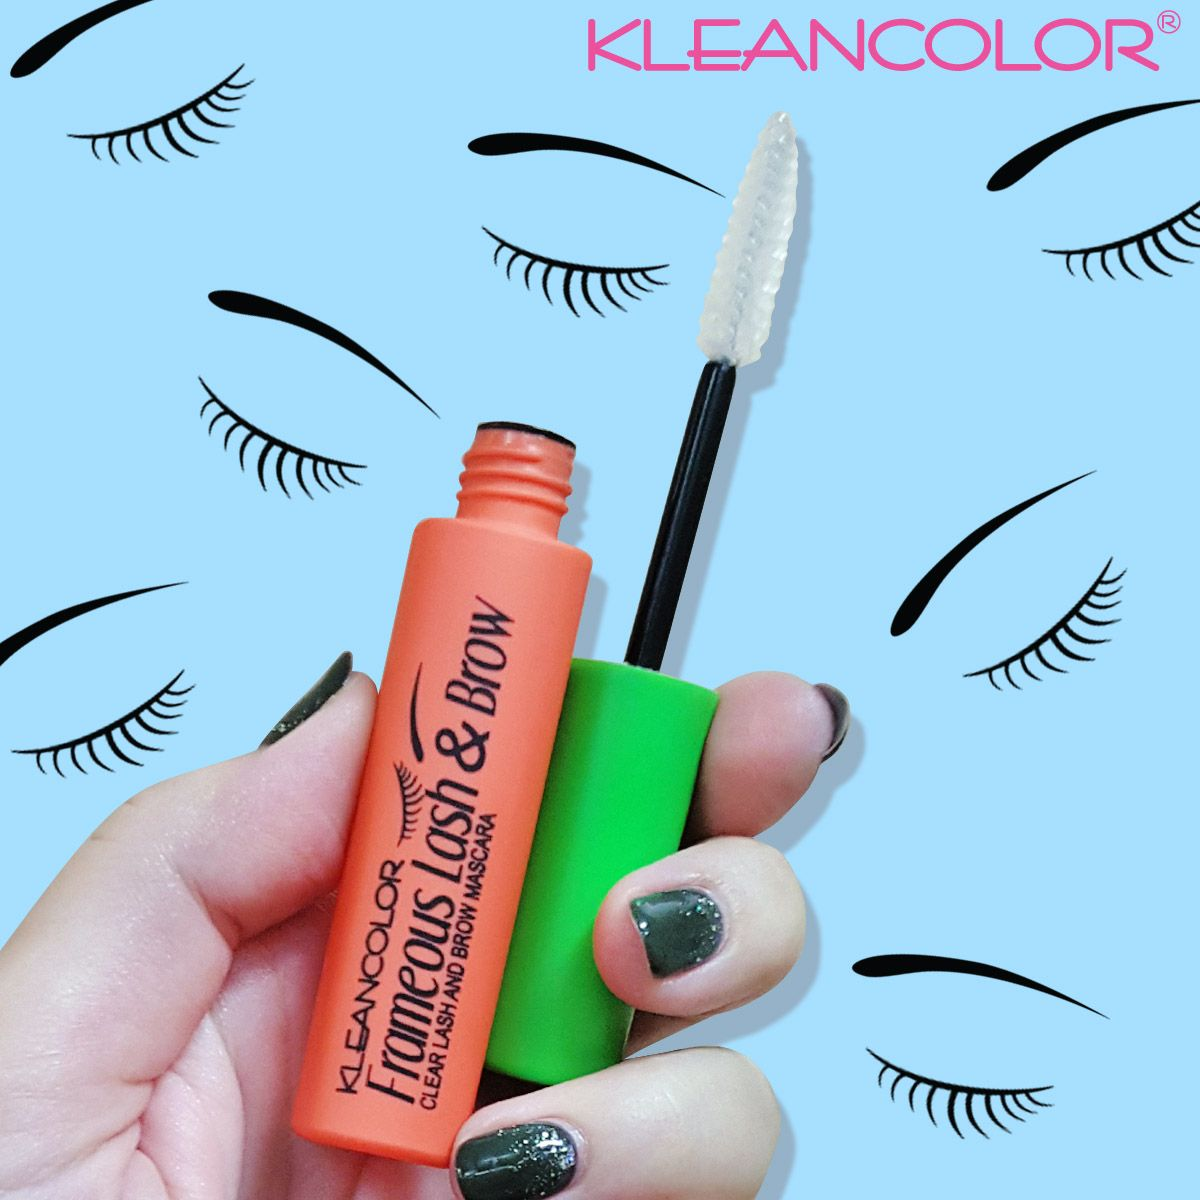 c2453c4ca3d Clear your schedule and get your hands on Frameous Lash & Brow Clear Lash  and Brow Mascara (MS1810). The clear gel formula lets you subtly enhance  your ...